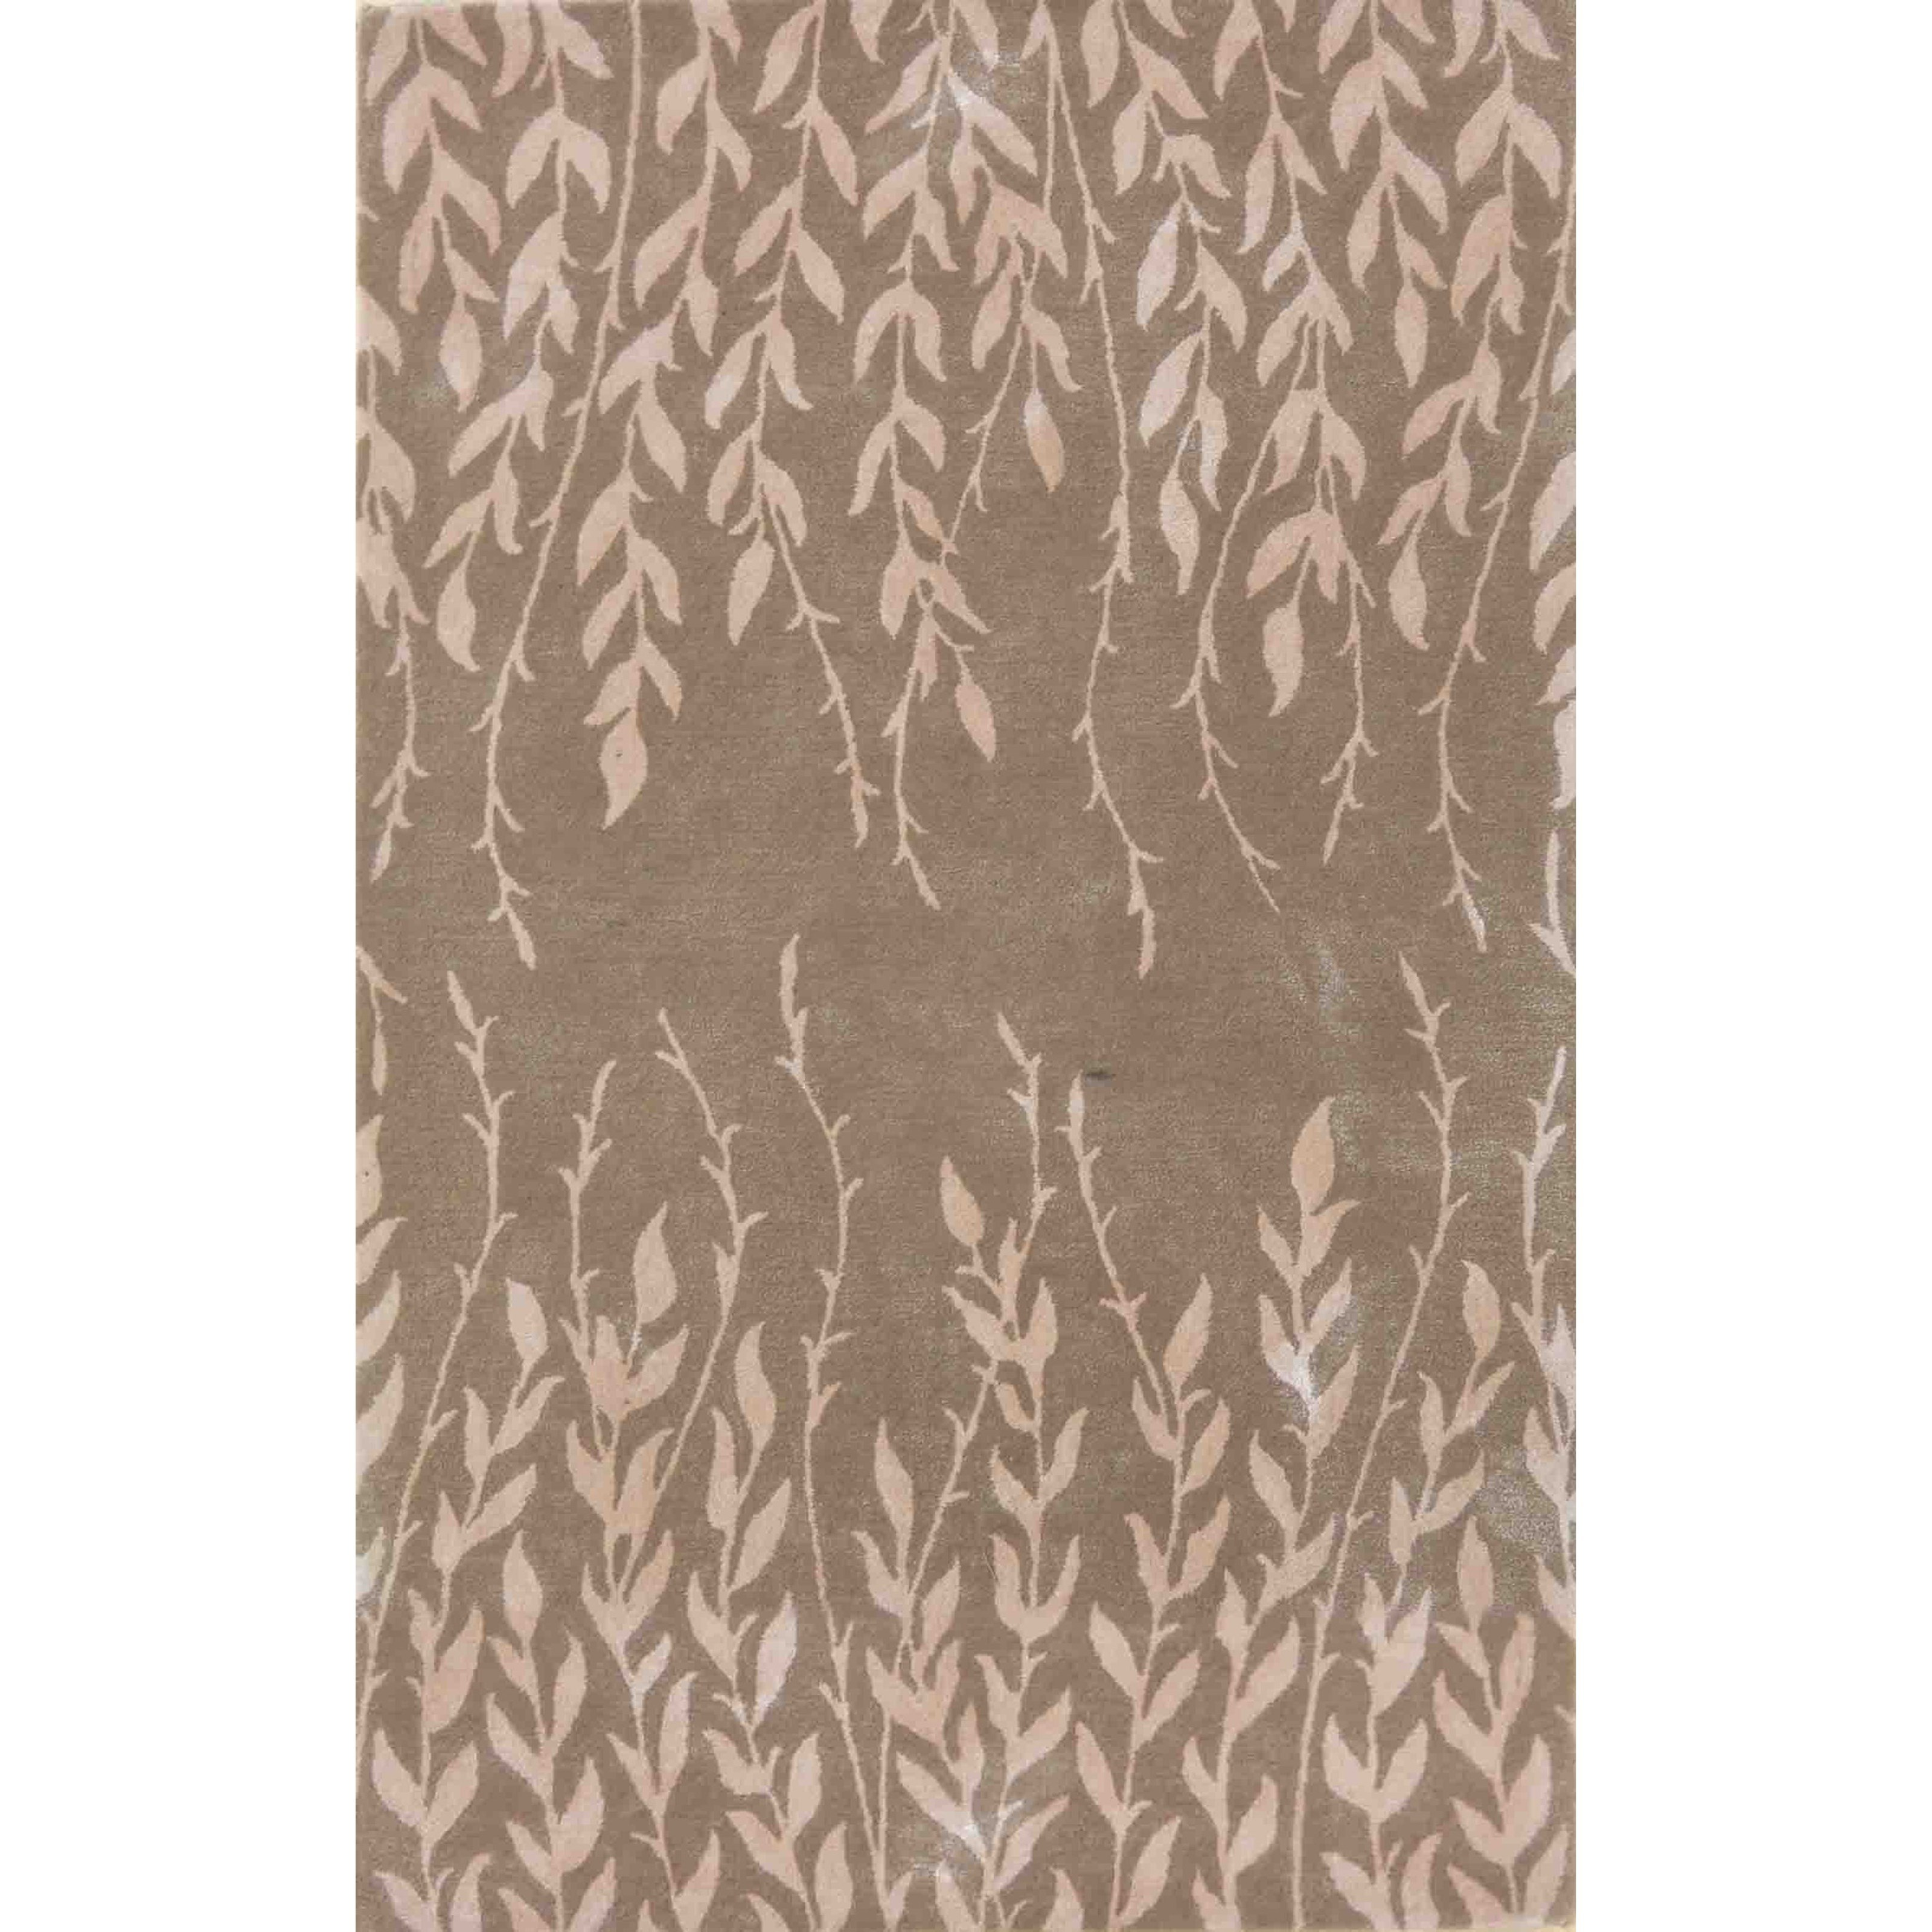 9' X 13' Beige Tranquility Area Rug